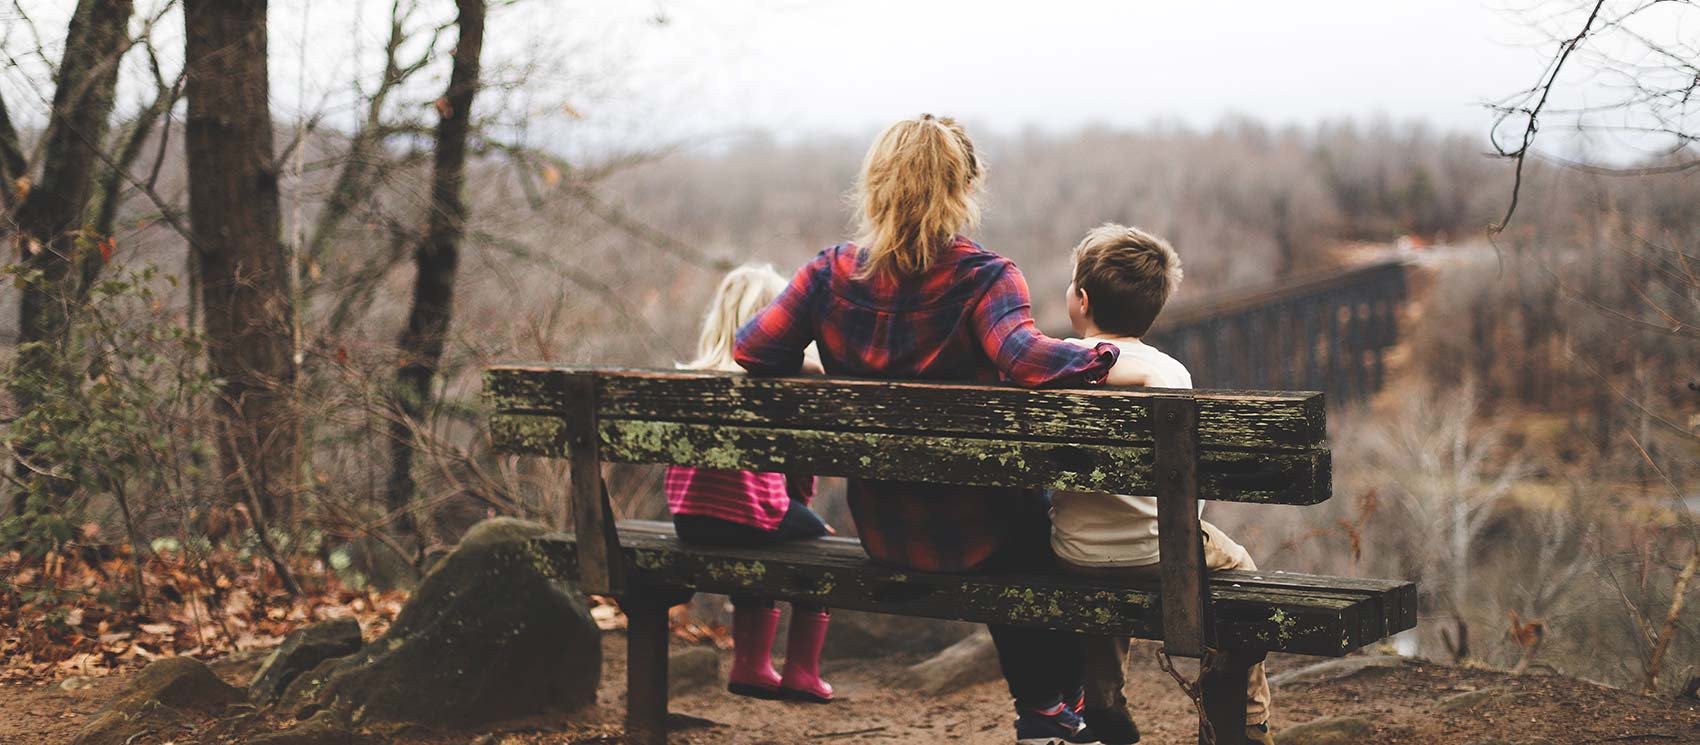 A way to mitigate the effects of divorce on kids